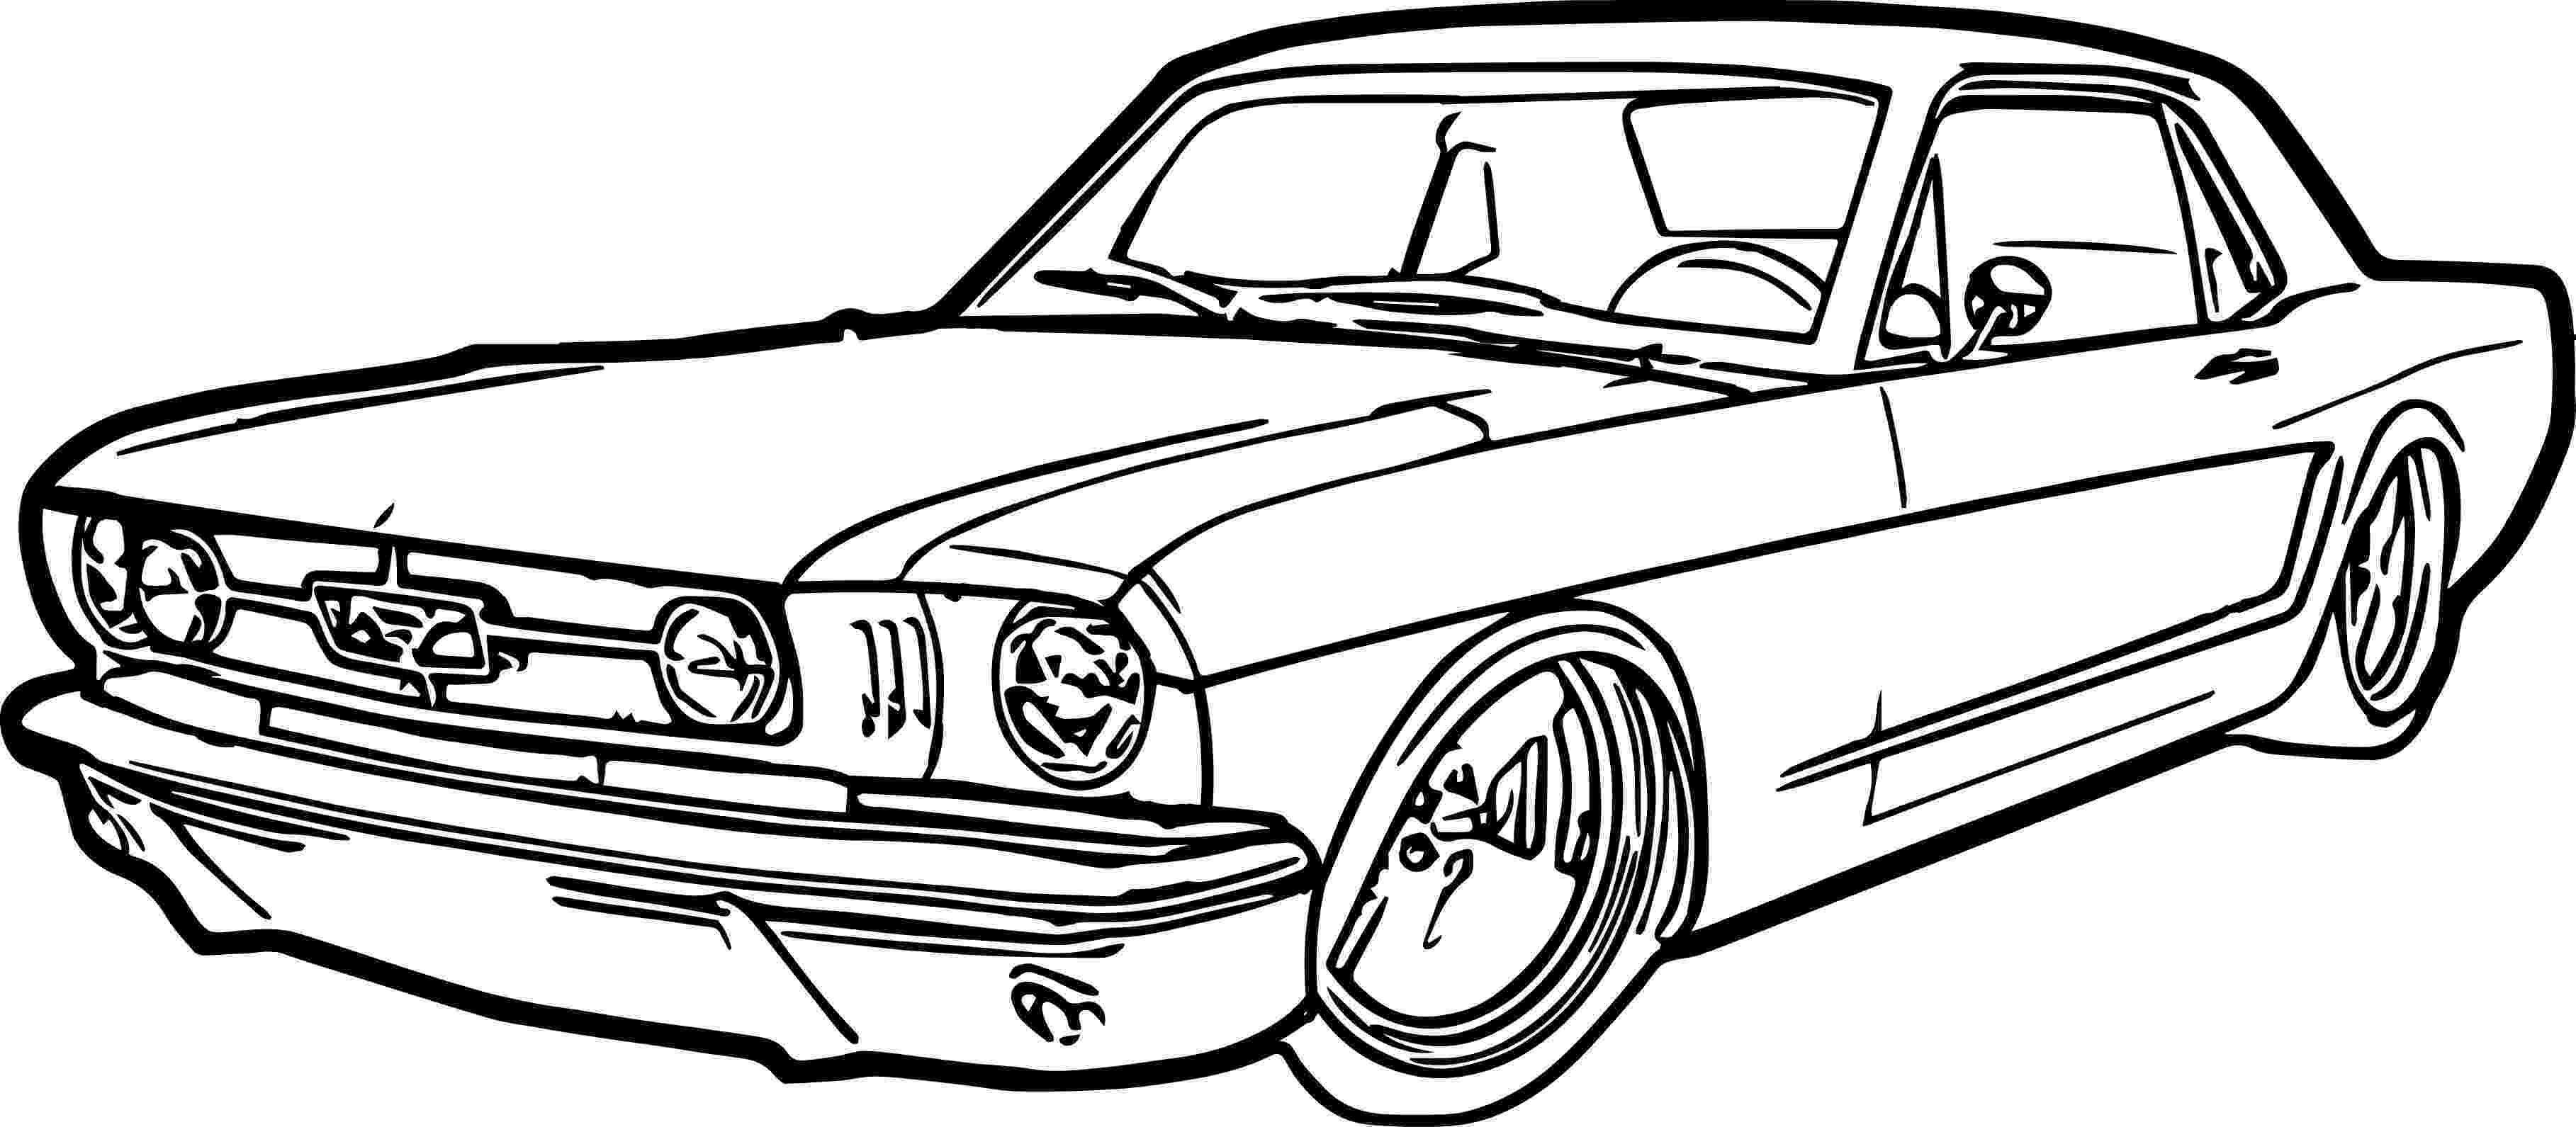 mustang coloring pictures ford mustang car coloring page wecoloringpagecom mustang coloring pictures